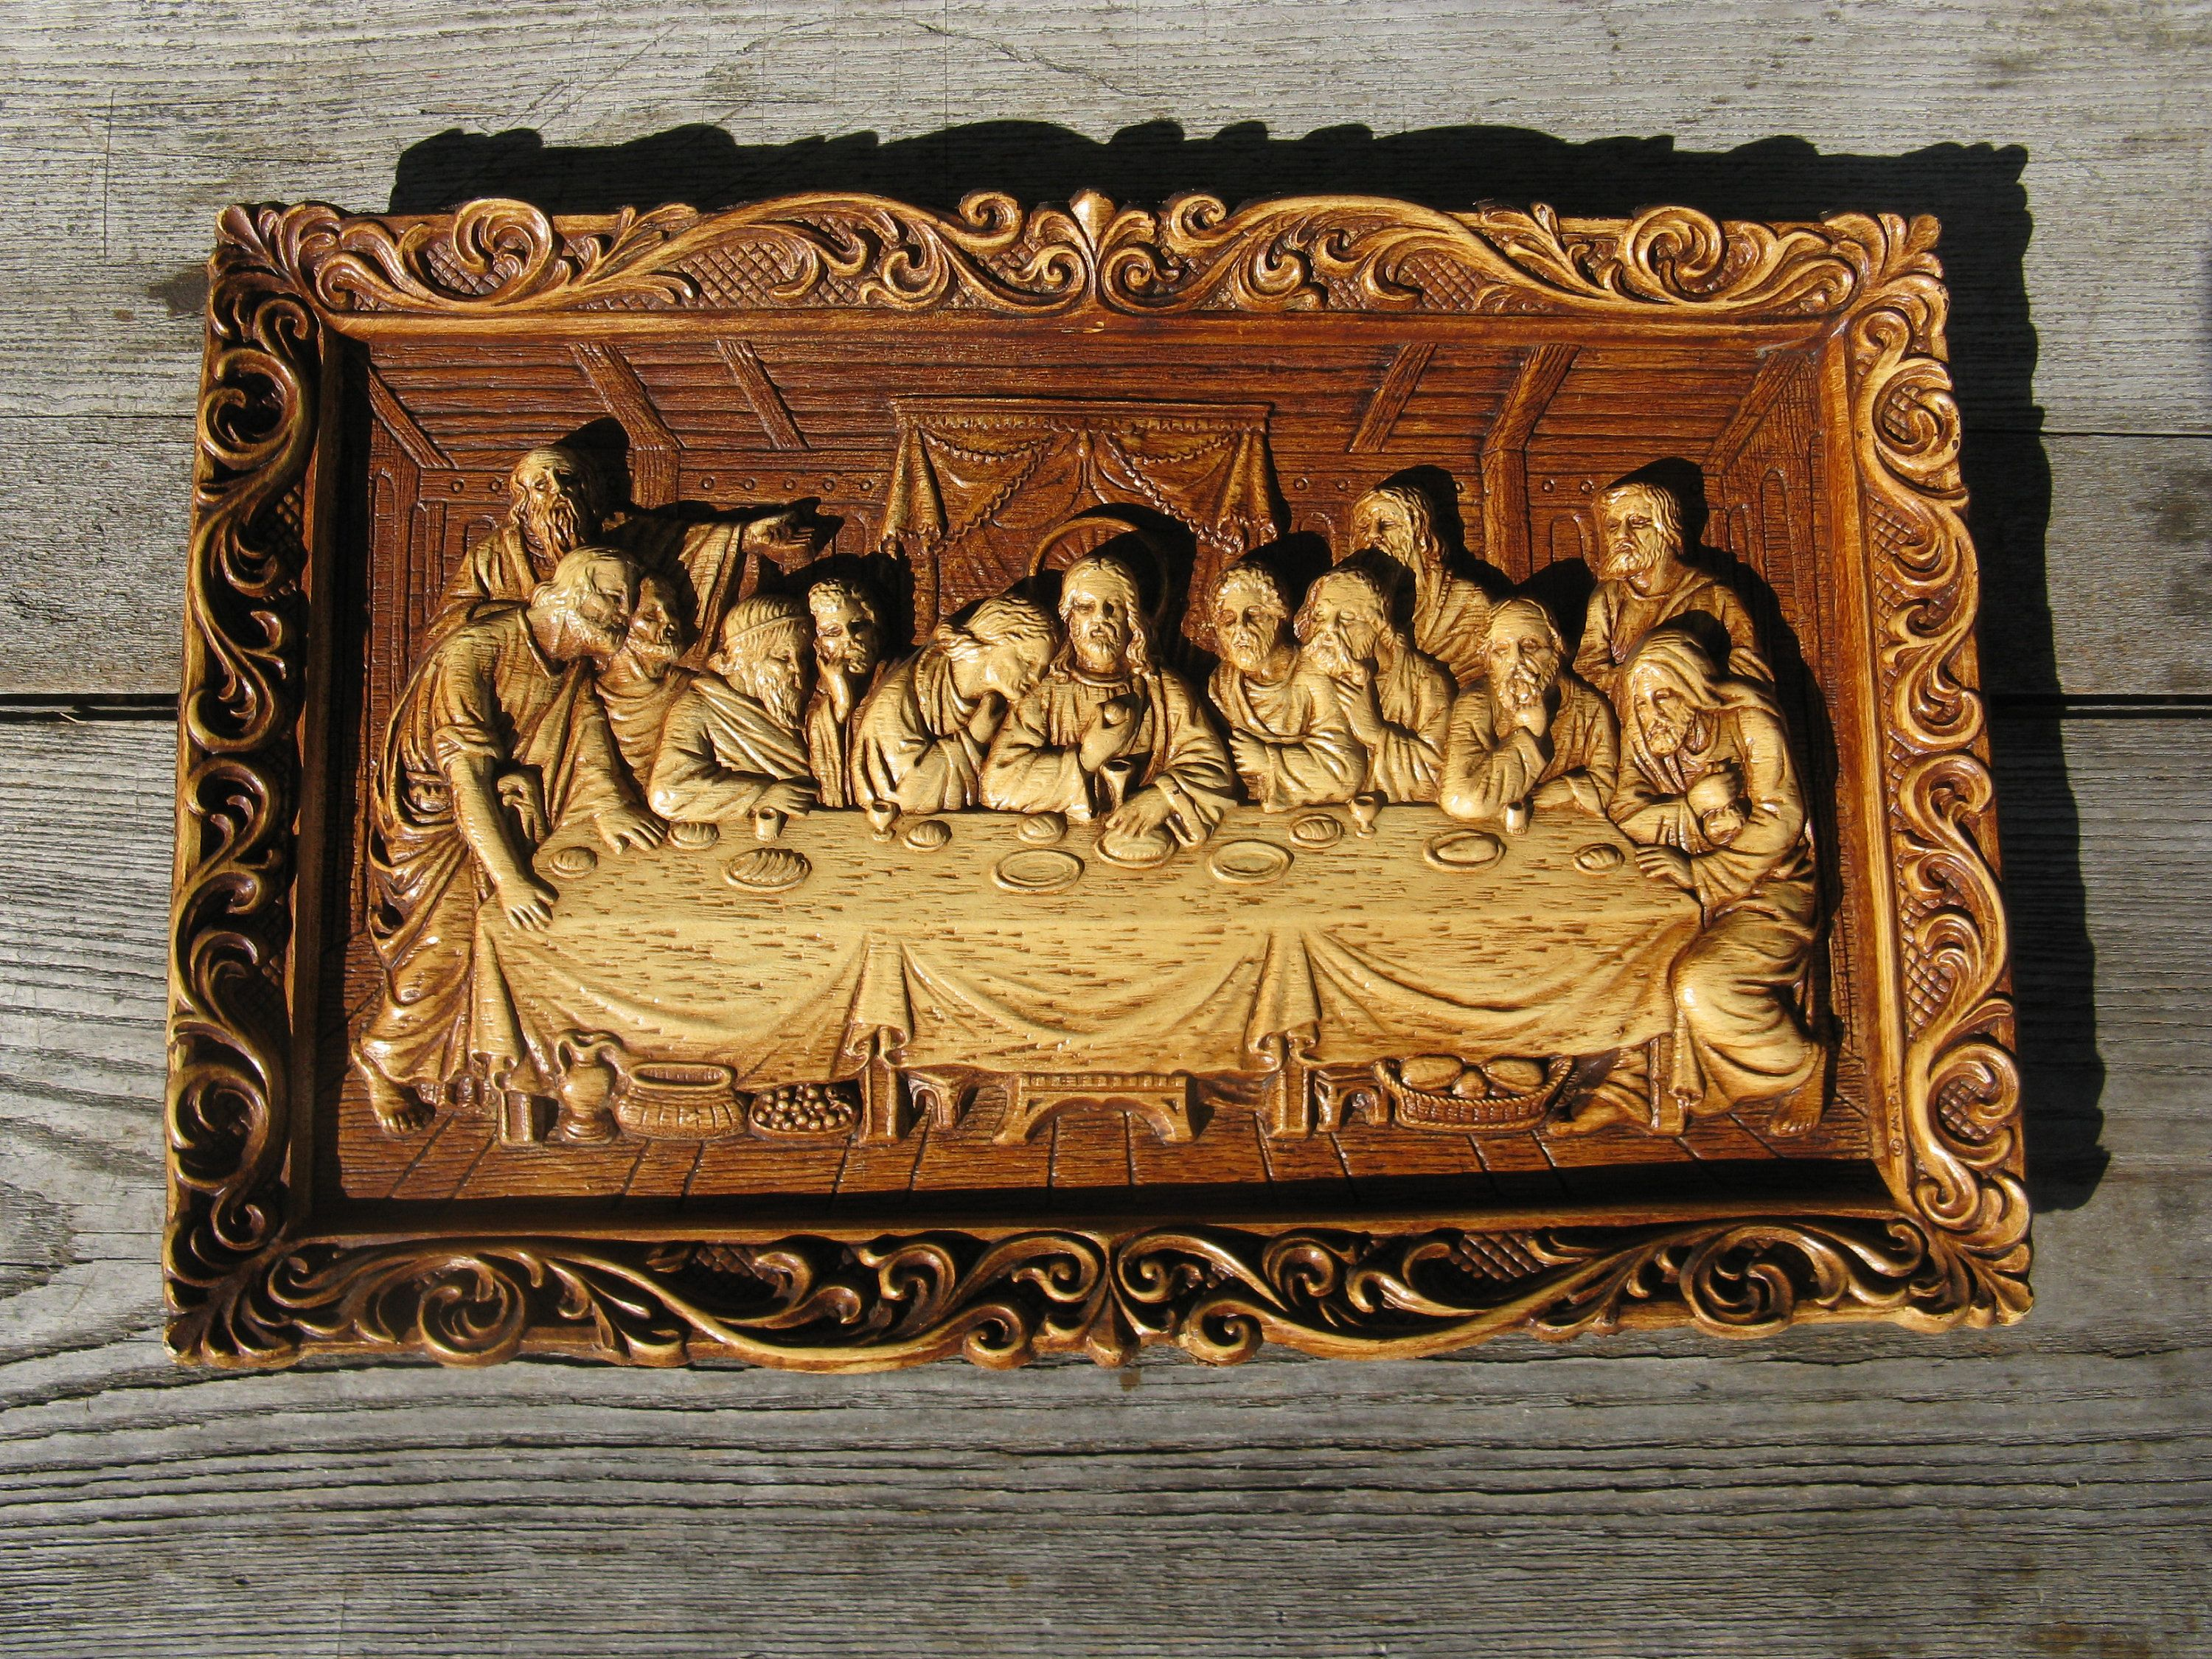 Vintge Last Supper Wall Hanging Christian Wall Decor Grannie Chic Movie Prop Christian Wall Decor Movie Props Wood Art